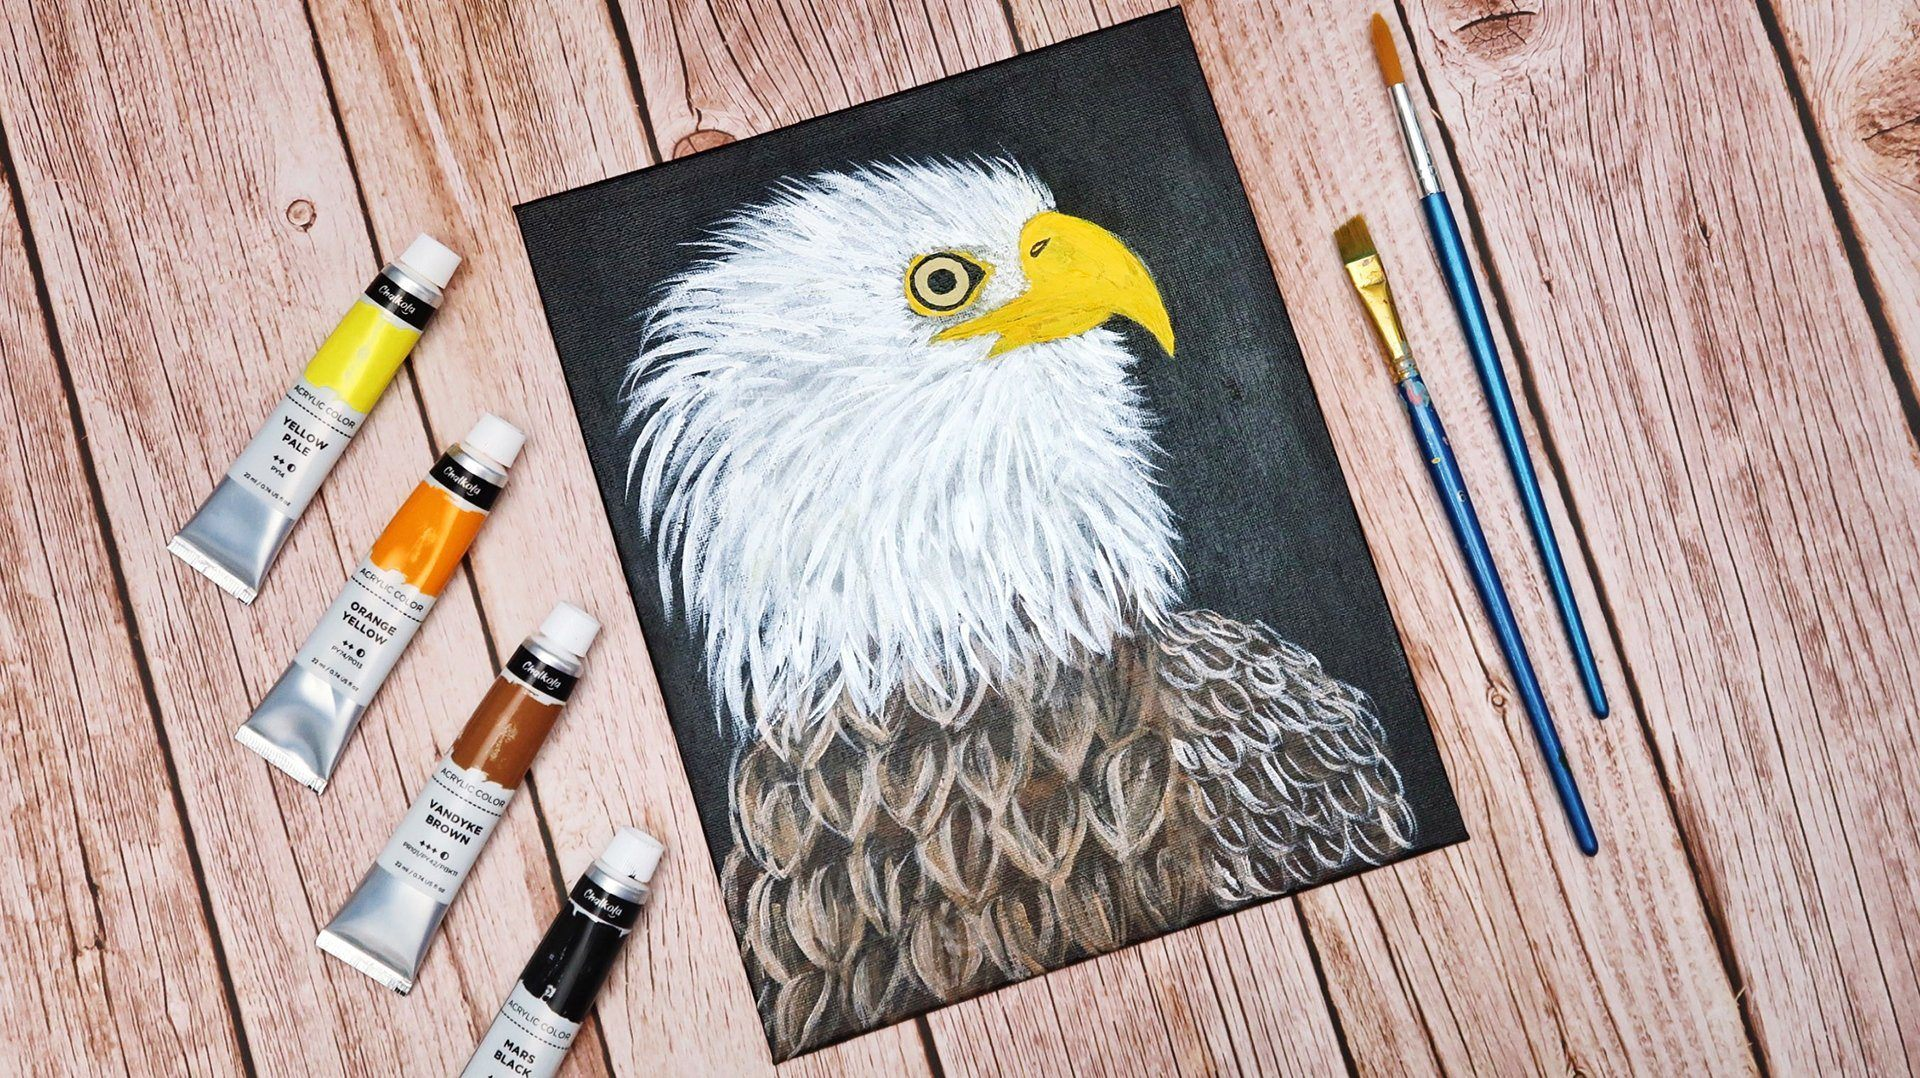 HOW TO: Paint an Eagle Using Acrylics